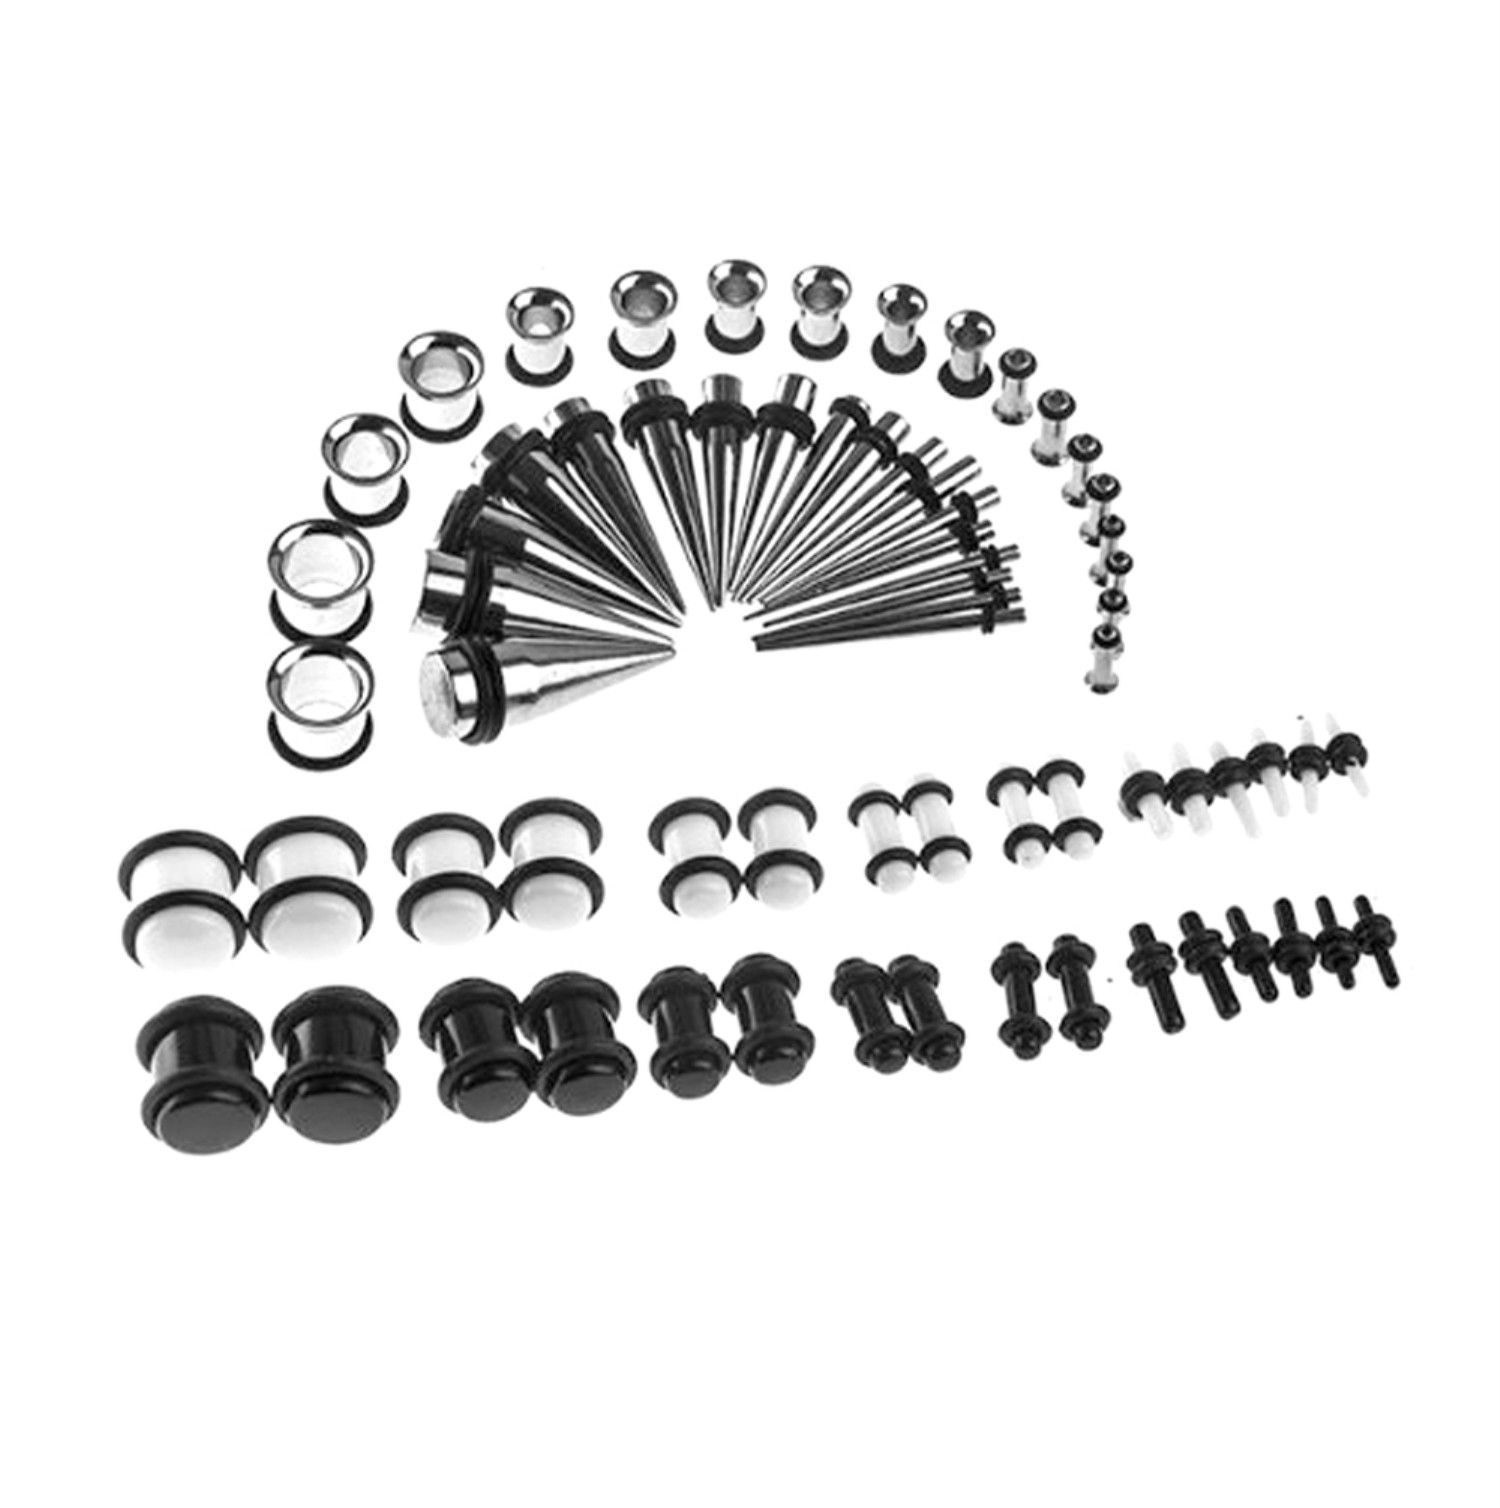 Bodyj4you Gauges Kit 72 Piece Stainless Steel Taper